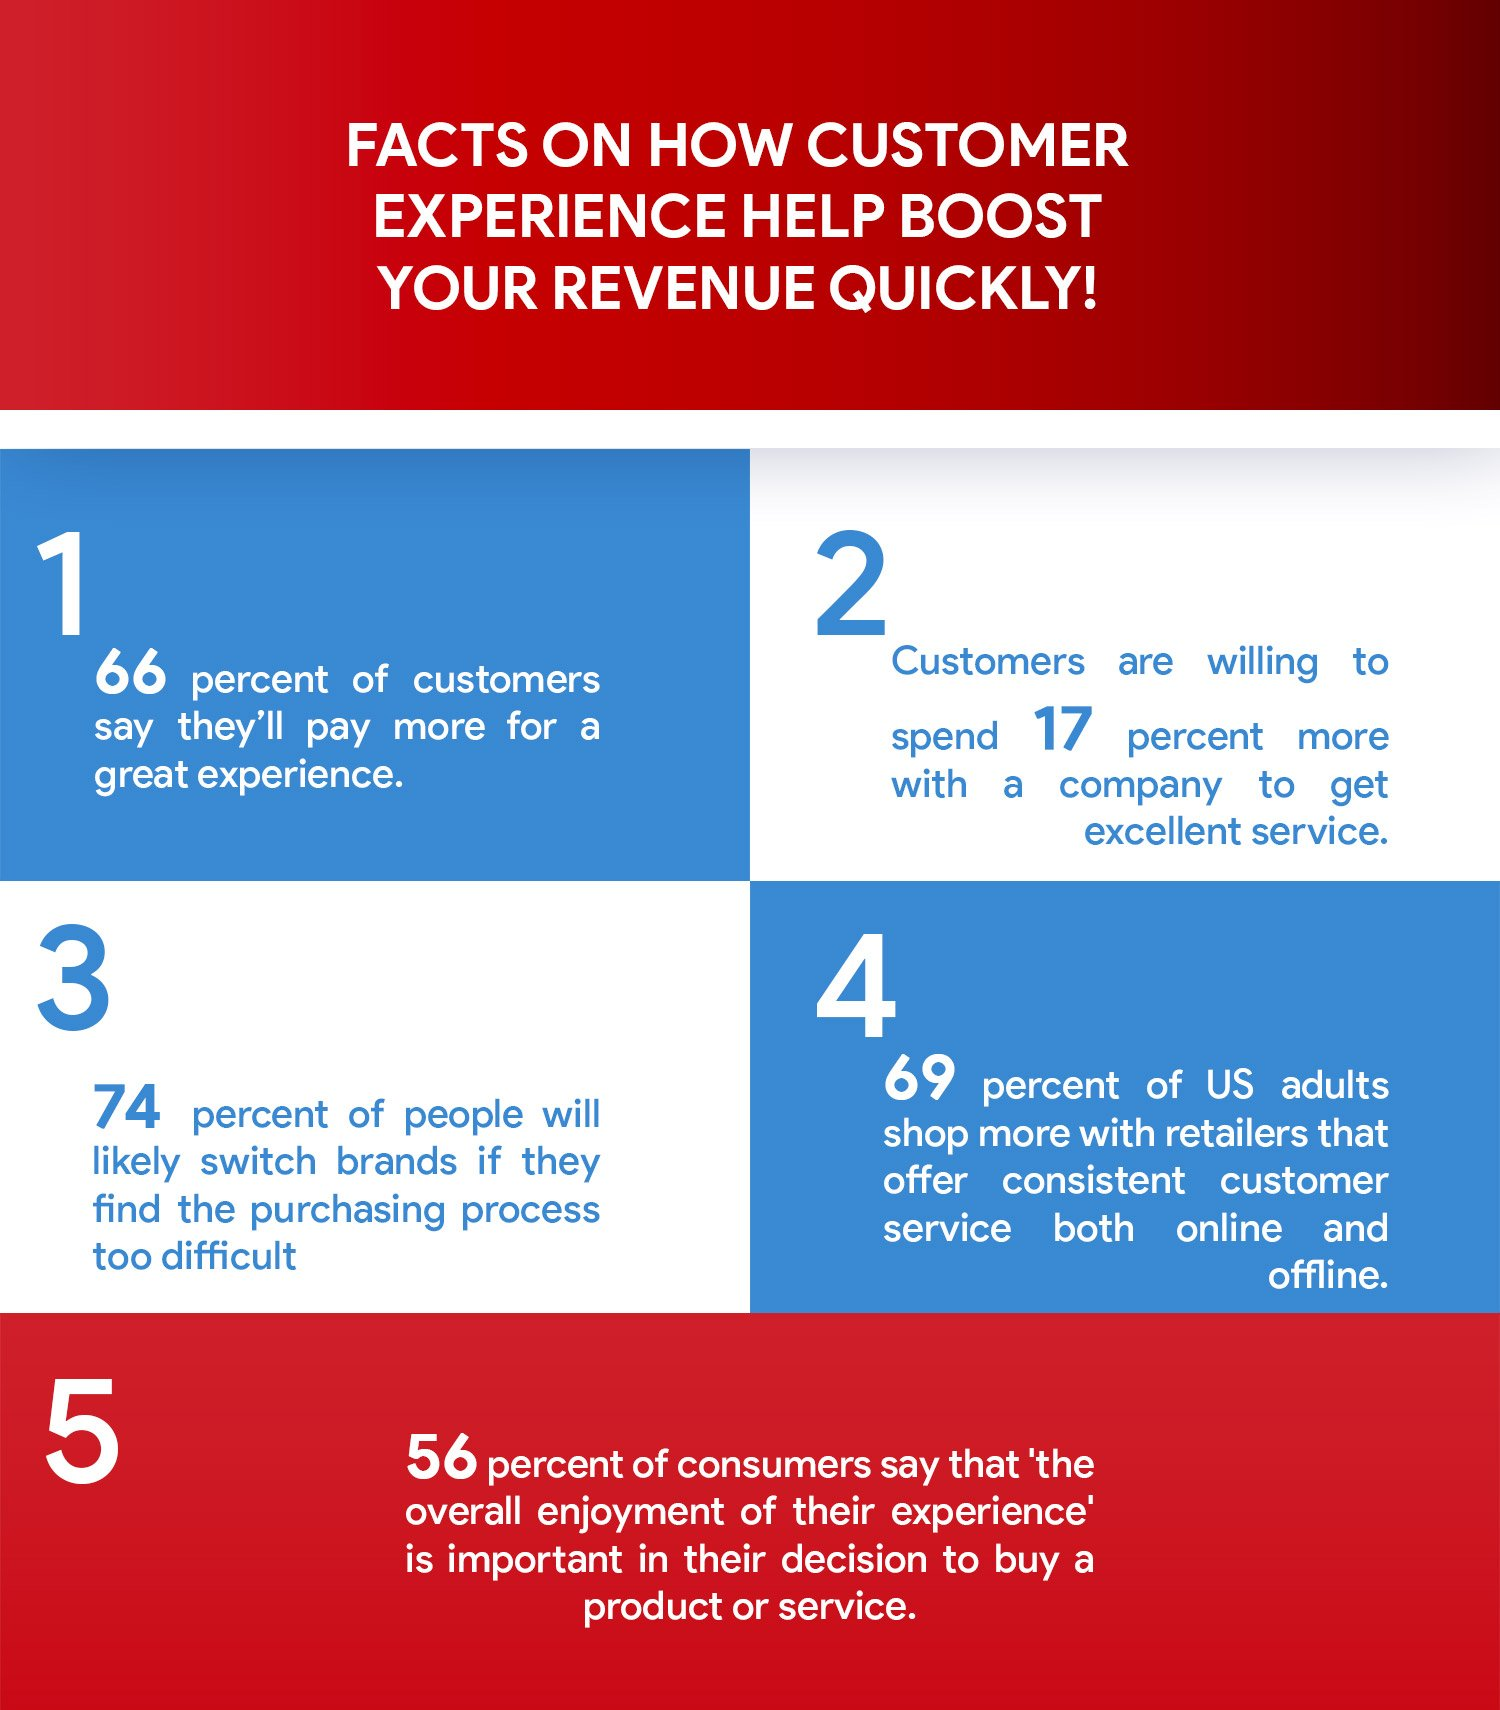 customer experience to boost revenue